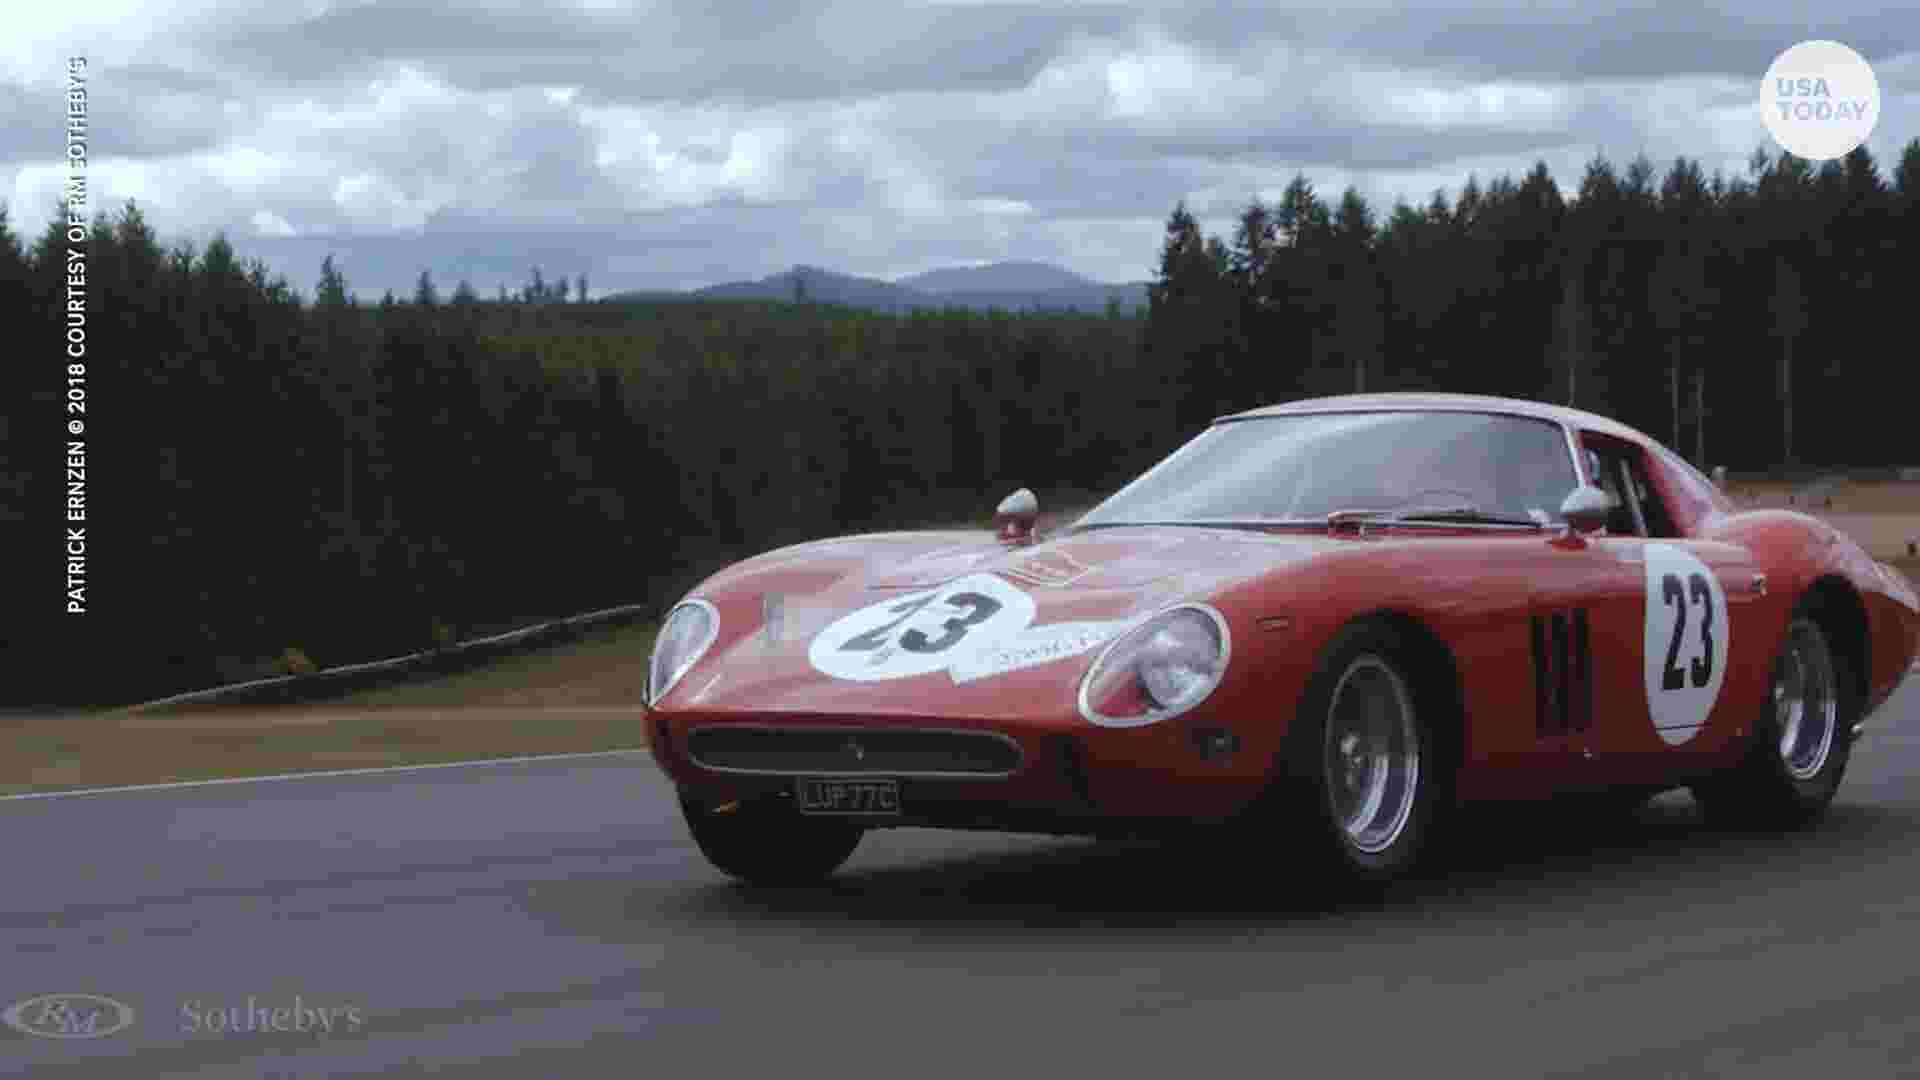 monterey car show 2018: ferrari gto could sell for $60 million